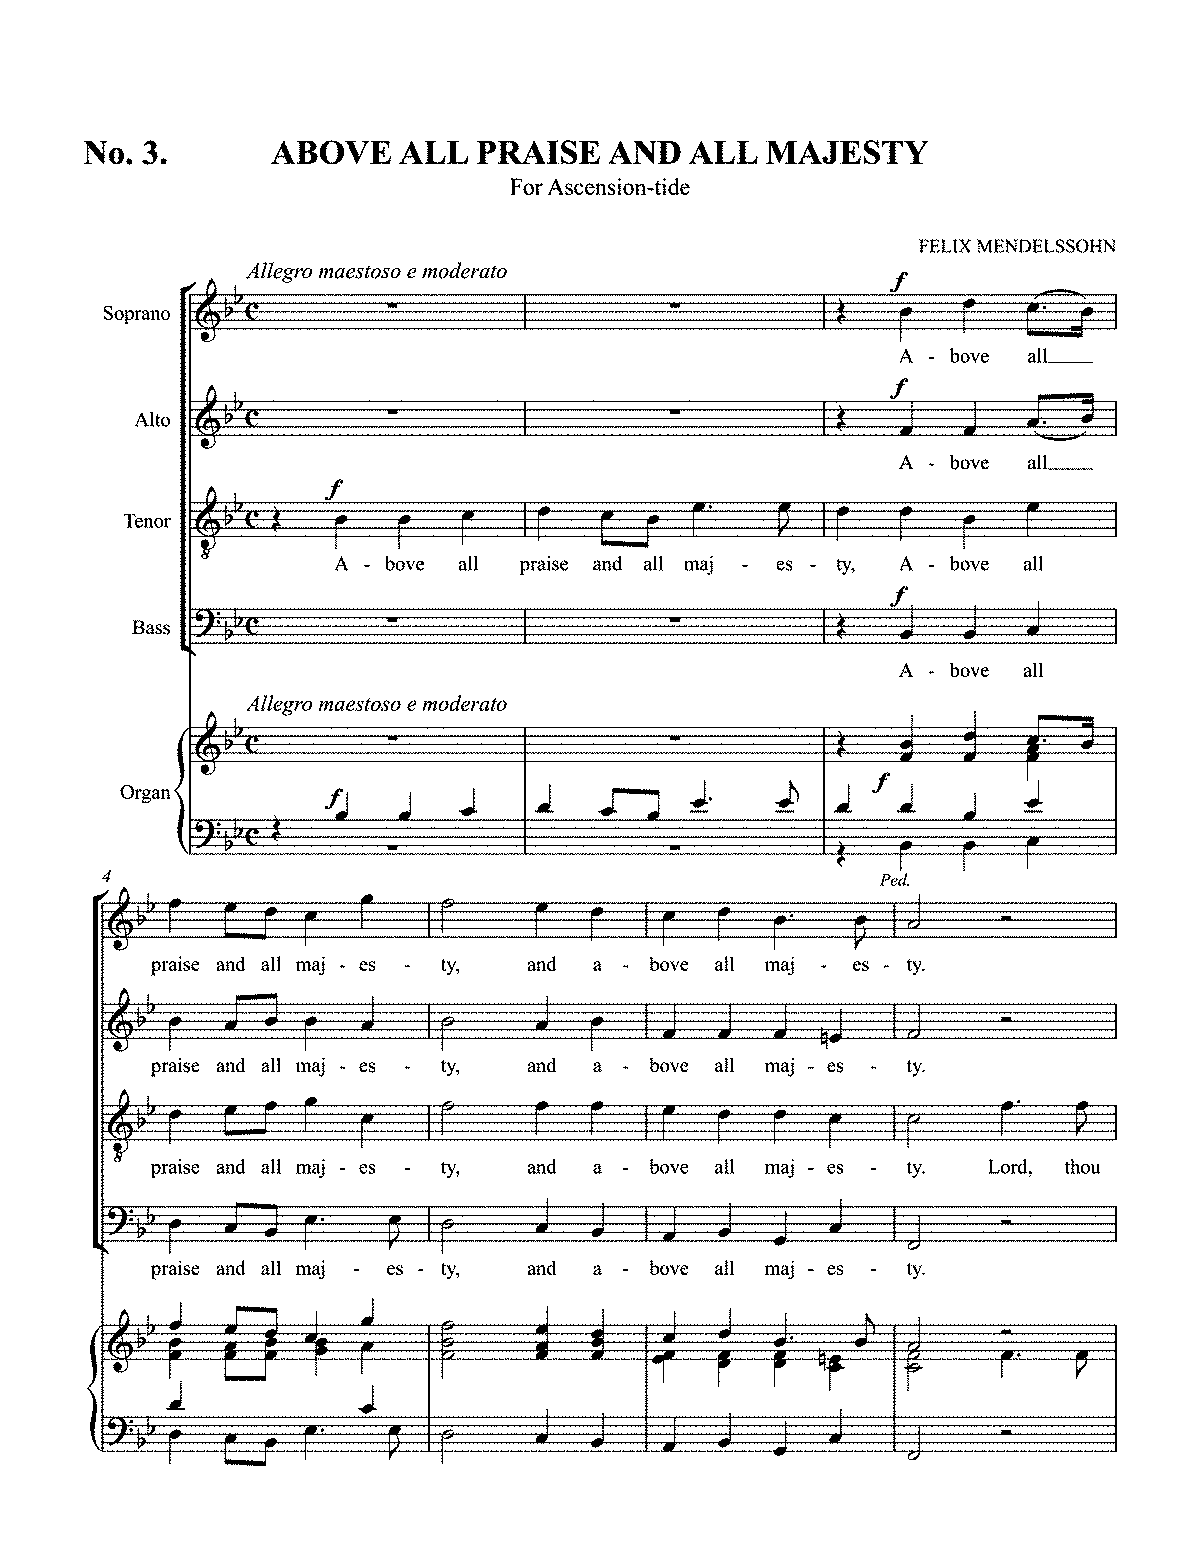 PMLP106915-Above All Praise and Majesty - Mendelssohn.pdf